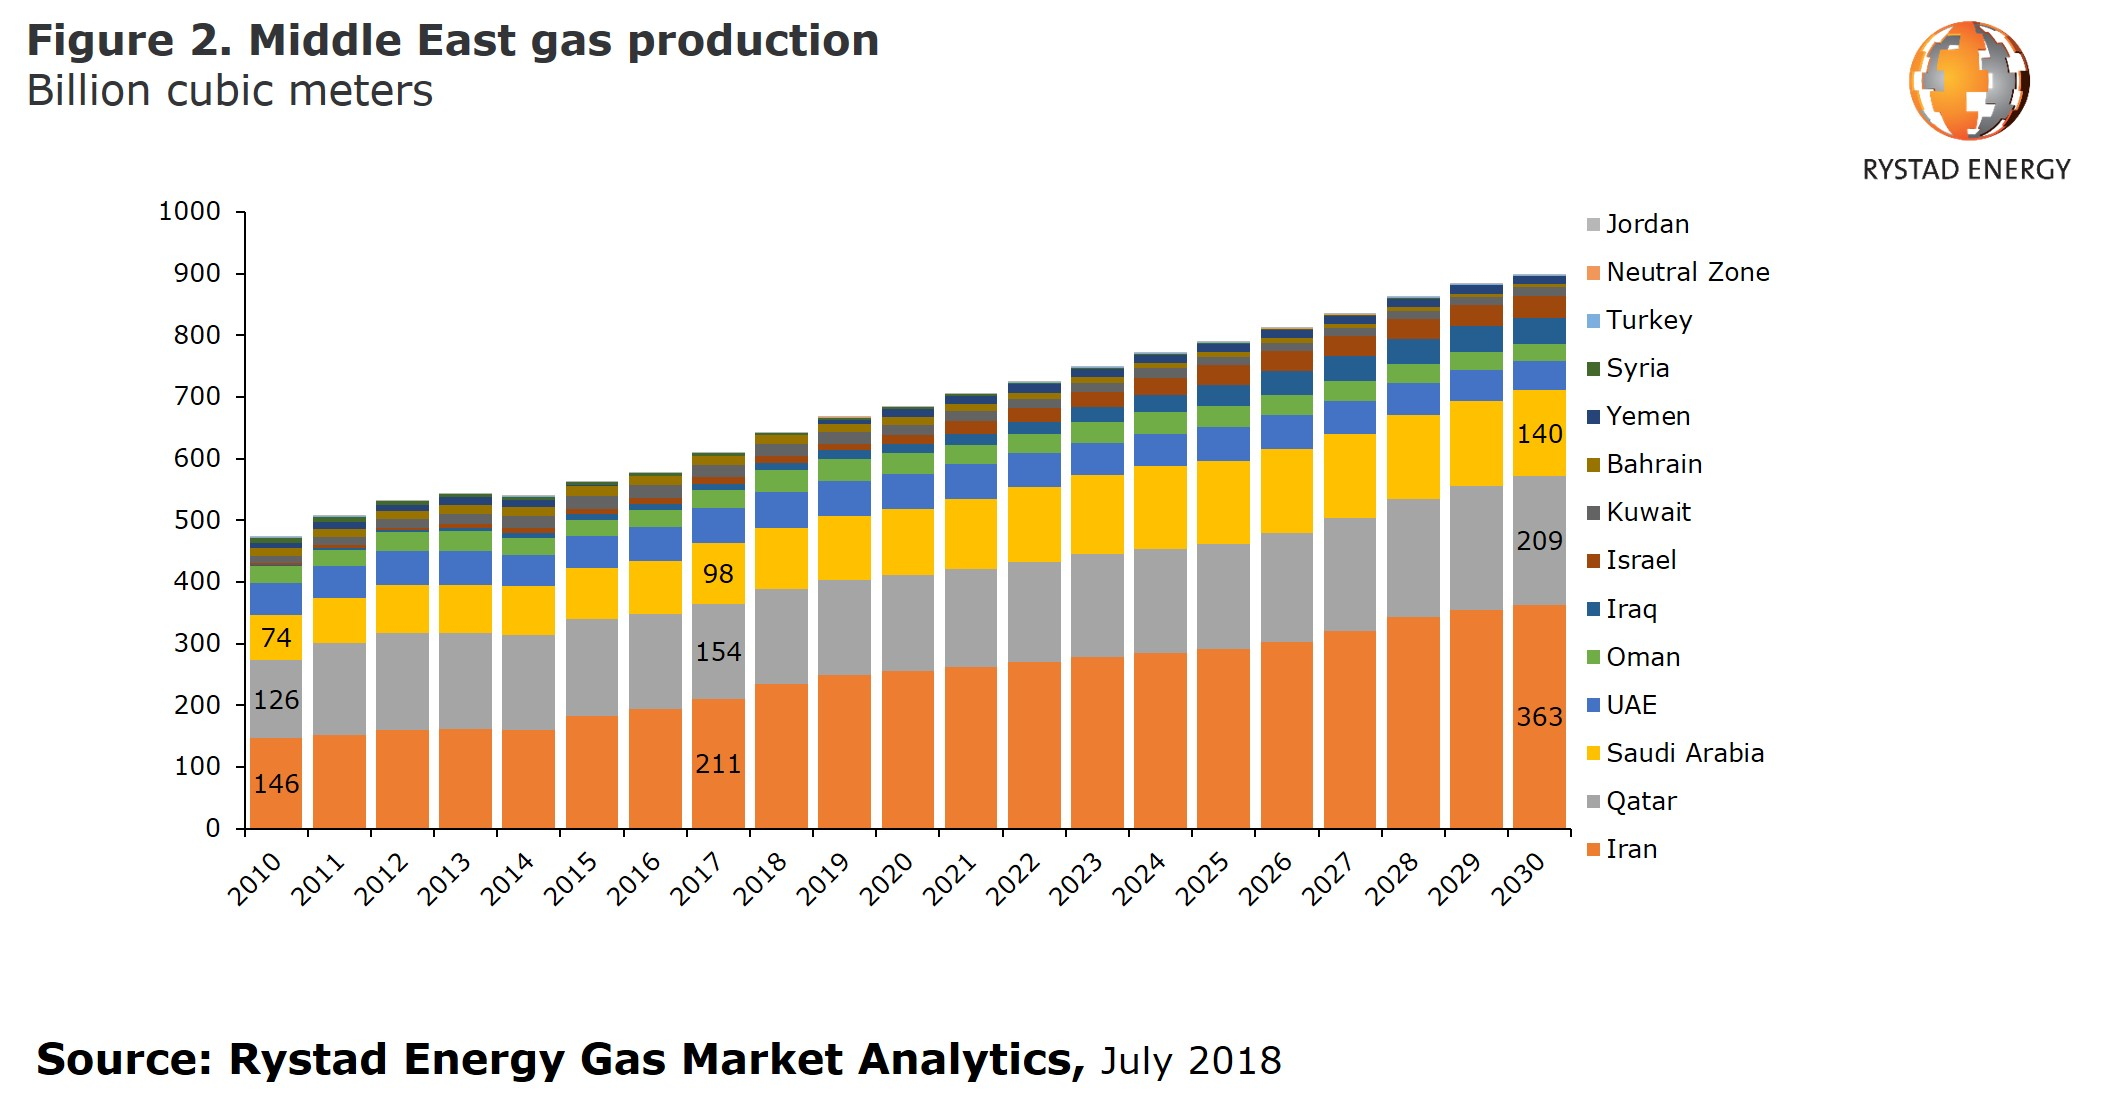 Figure 2. A bar chart showing the Middle East gas production in billion cubic meters from 2010 to 2030. Source: Rystad Energy Gas Market Analytics, July 2018